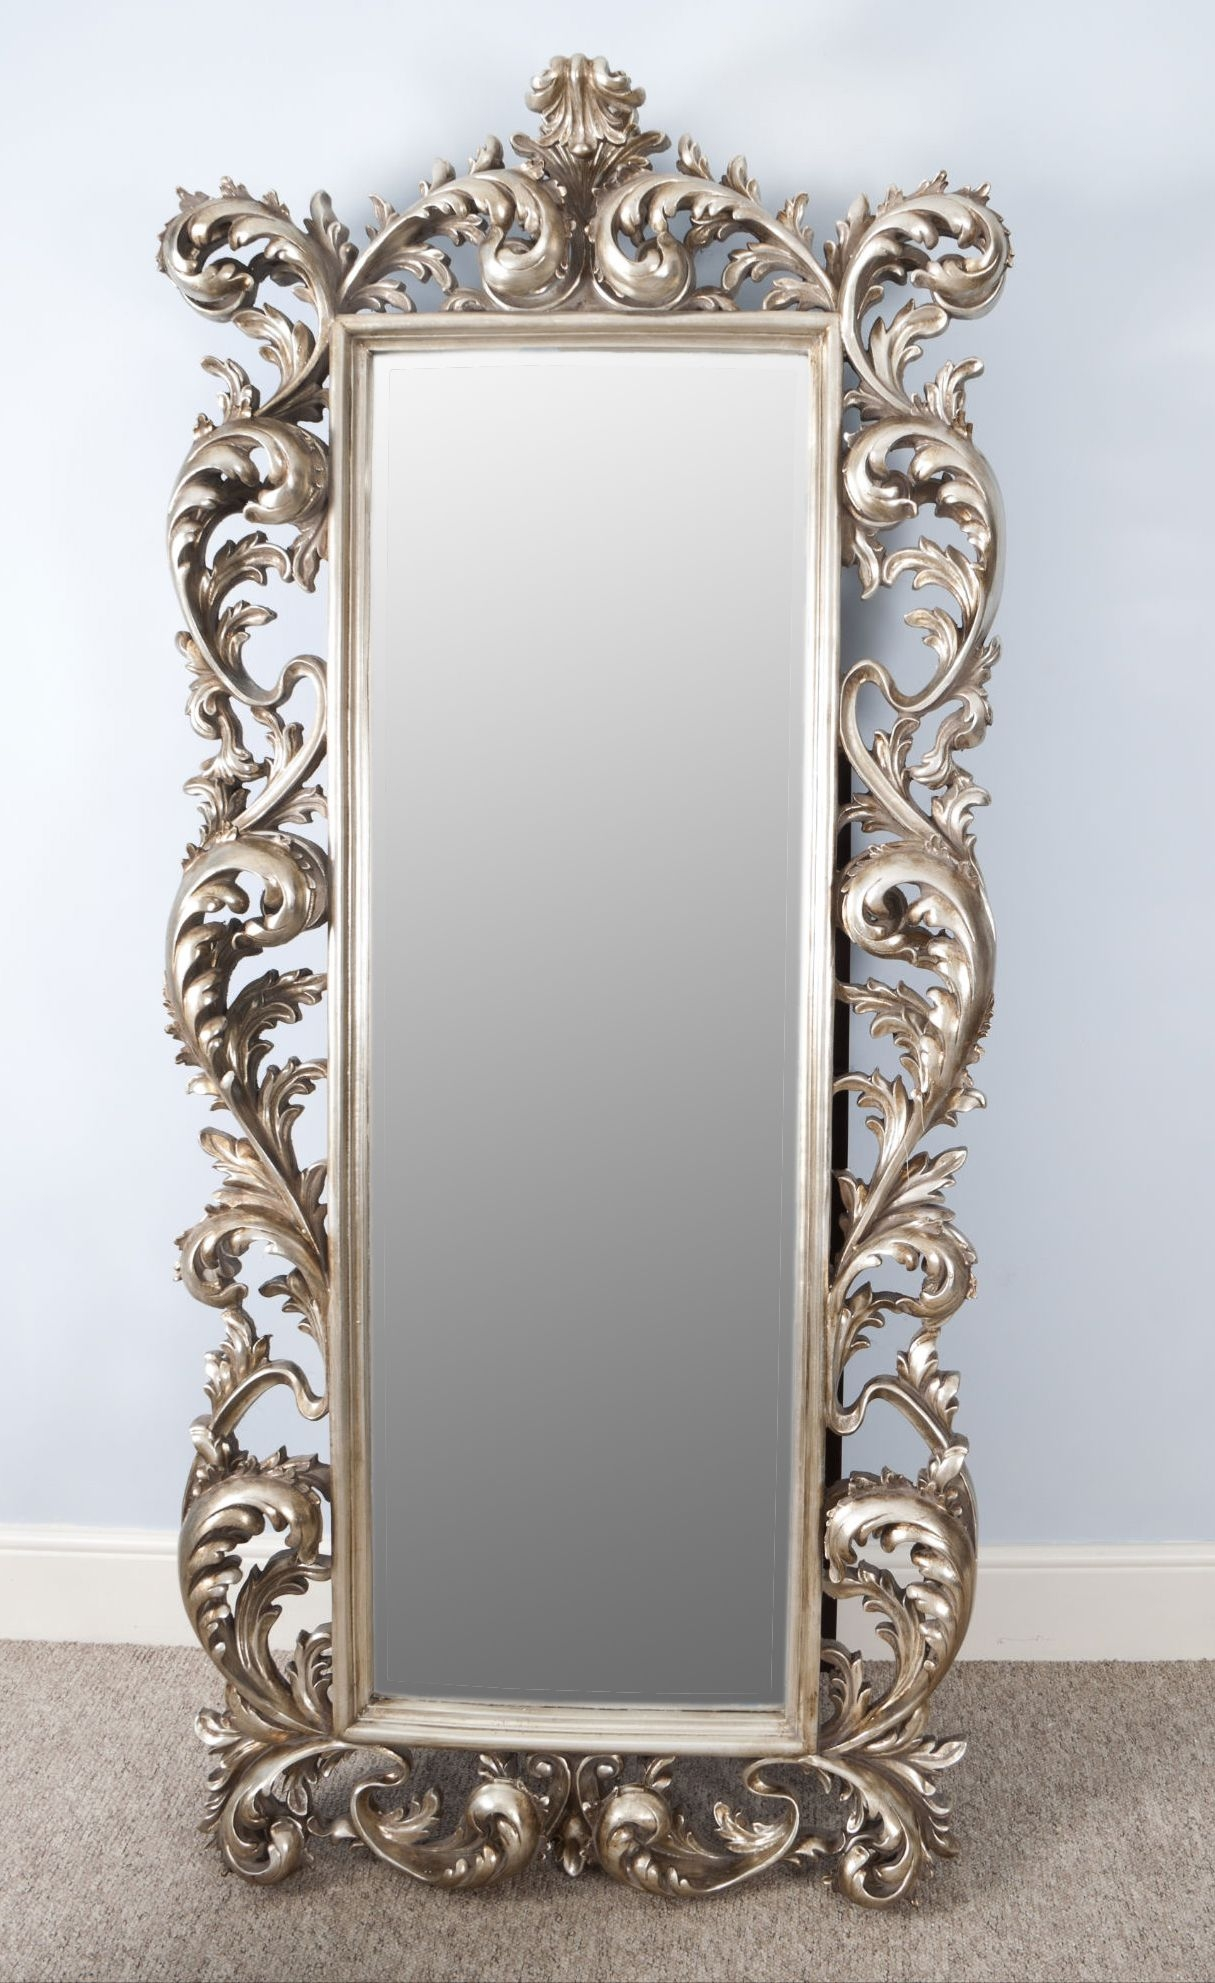 Classic Impression On Antique Wall Mirrors Vwho In Large Antique Silver Mirror (View 9 of 15)